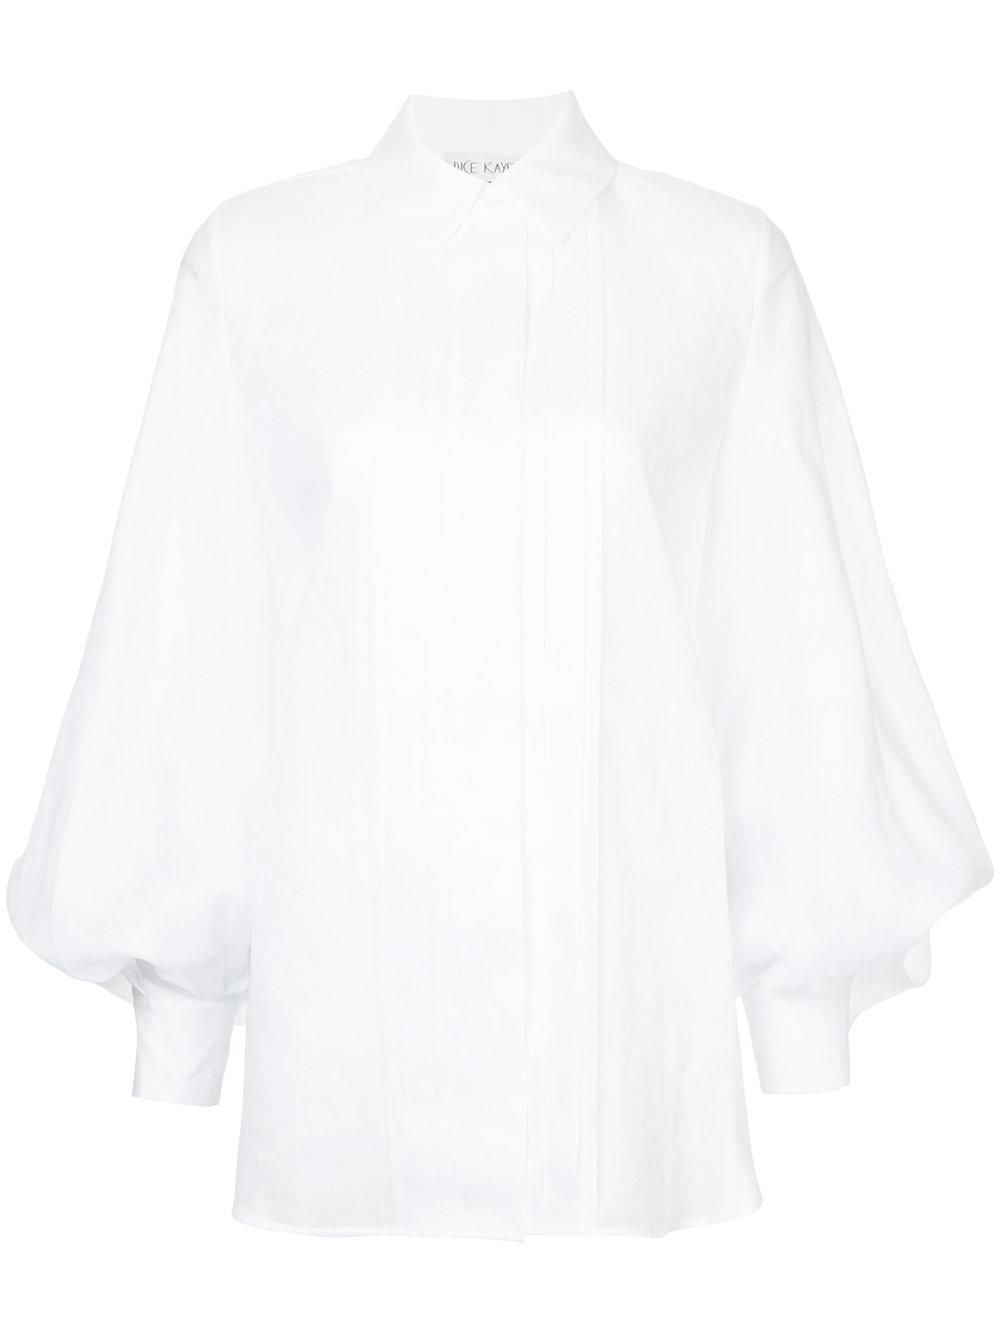 Dice Kayek Pleated Front Shirt